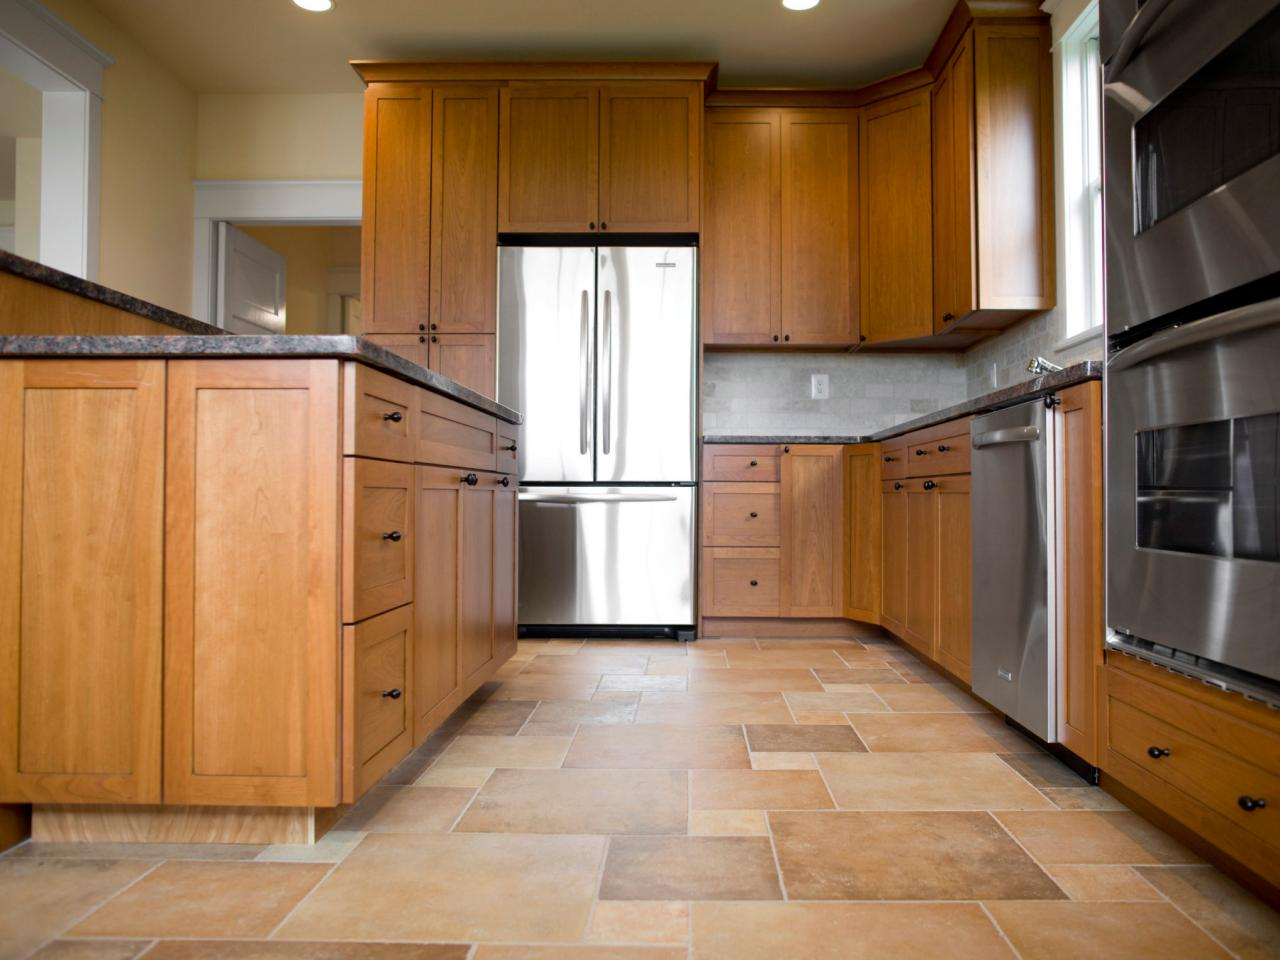 Uncategorized Tiles Kitchen Floor whats the best kitchen floor tile diy related to floors tile